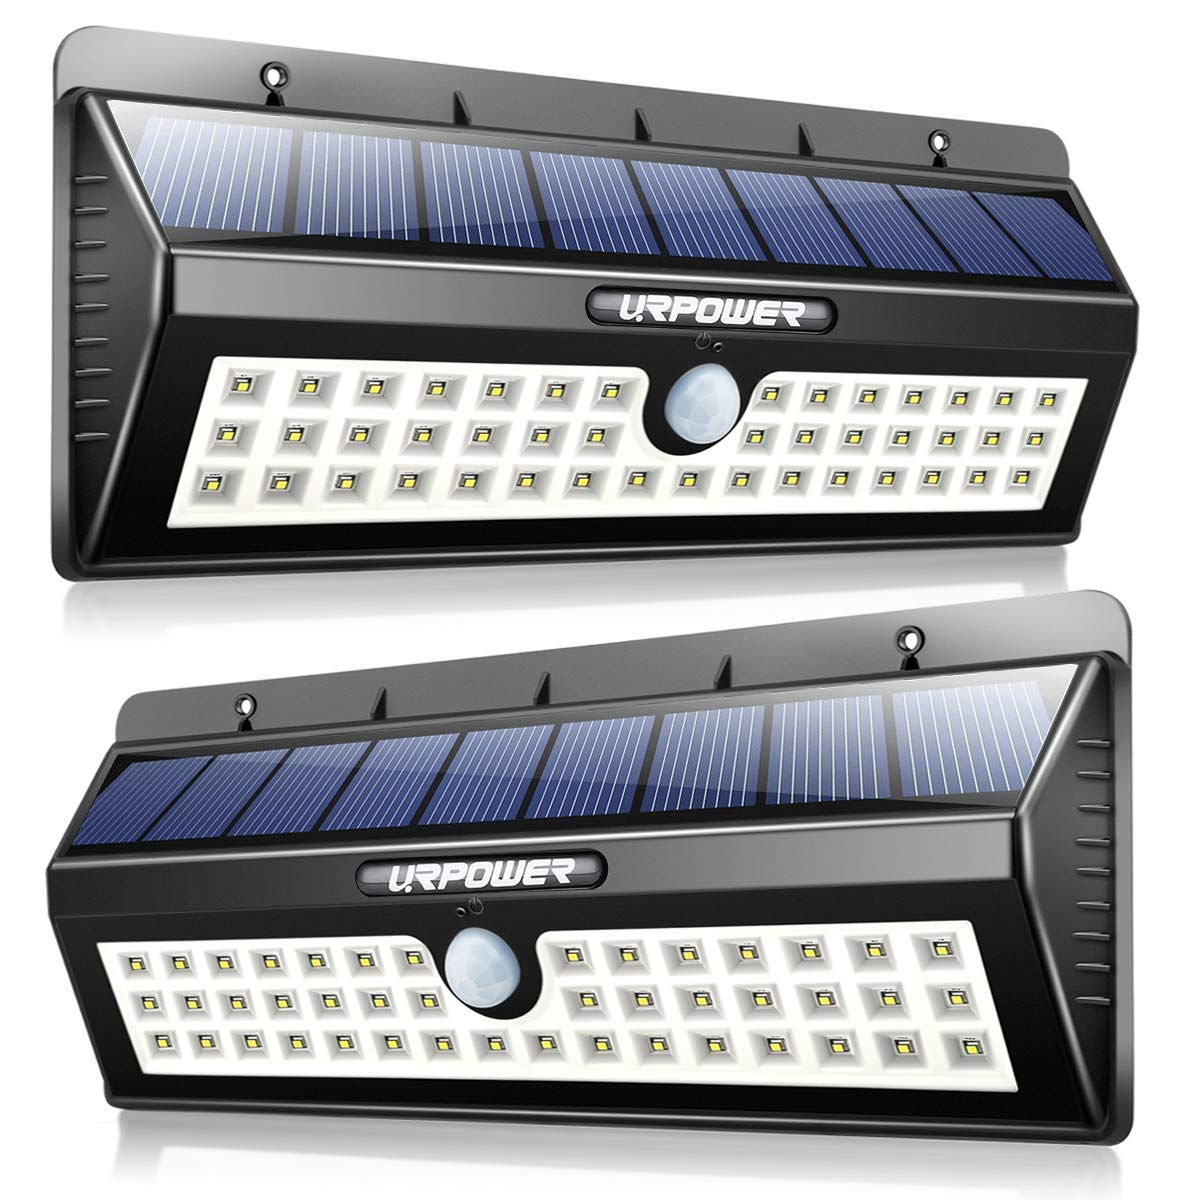 URPOWER Solar Lights, 44 LED Waterproof Motion Sensor Lights Outdoor Wireless Solar Powered Wall Light Motion Activated Auto On/Off Solar Security Lights Outdoor for Patio Deck Yard Cool White 2 Pack by URPOWER